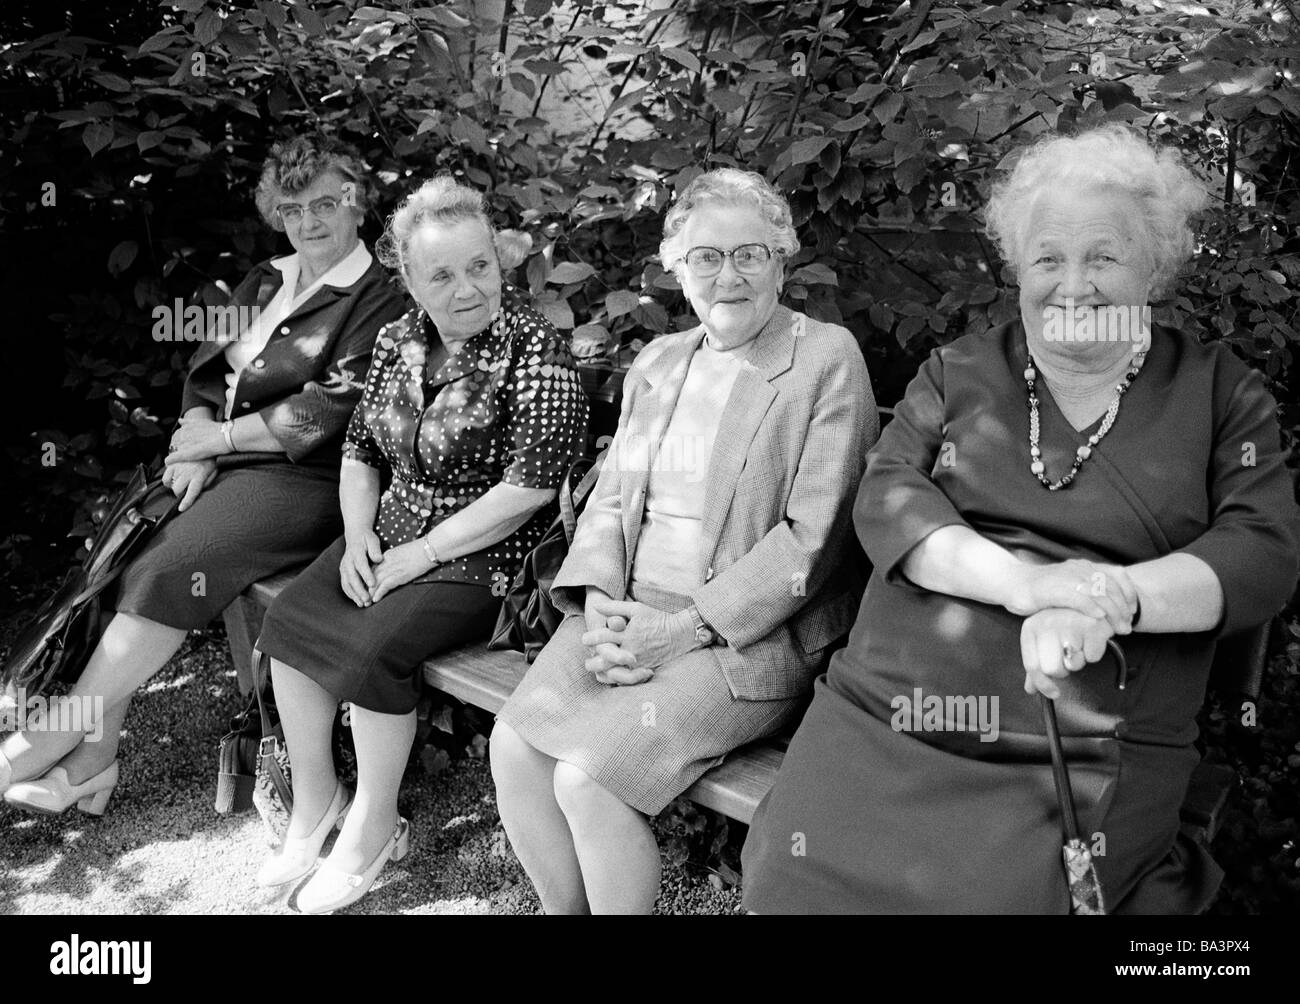 Eighties, black and white photo, people, elder people, four older women sitting on a bench, dress, ladies suit, - Stock Image